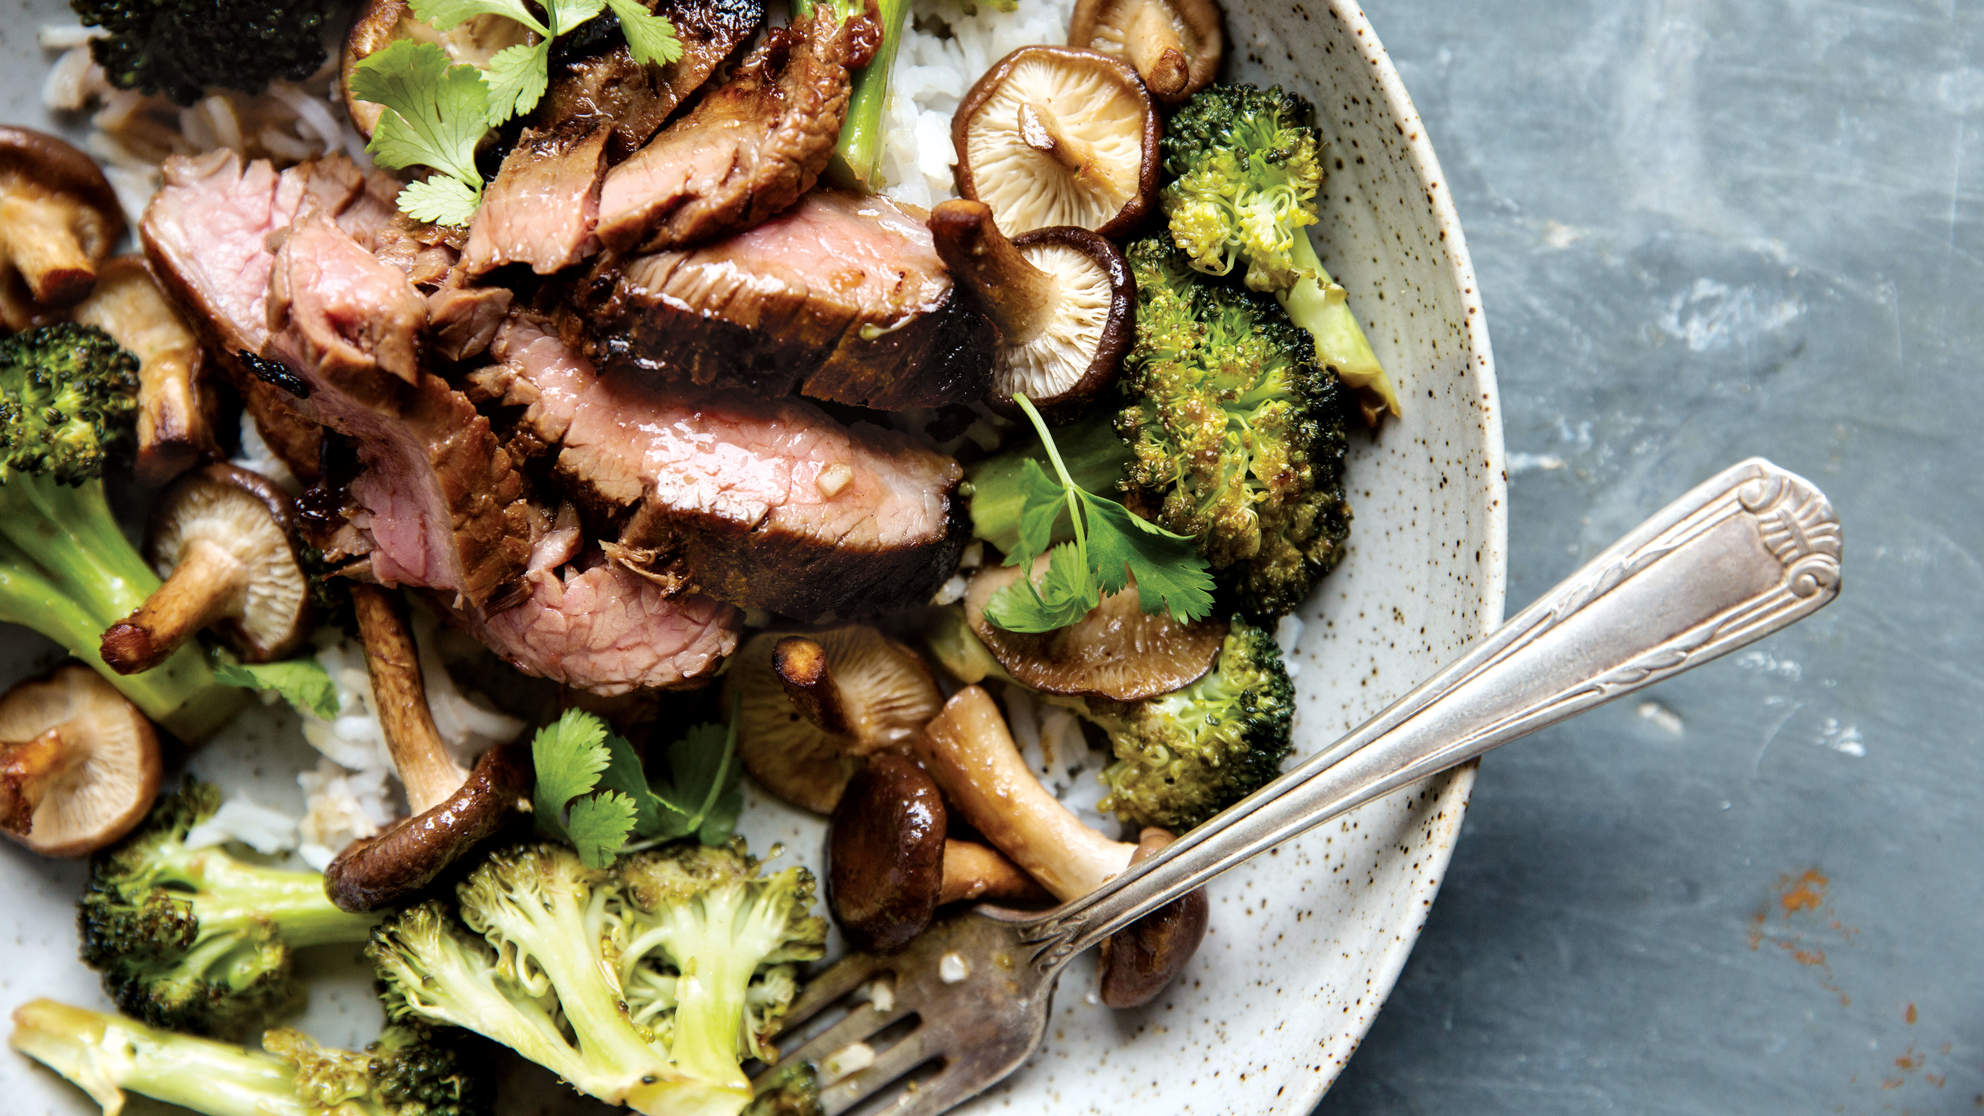 boiled-beef-and-broccoli-recipe